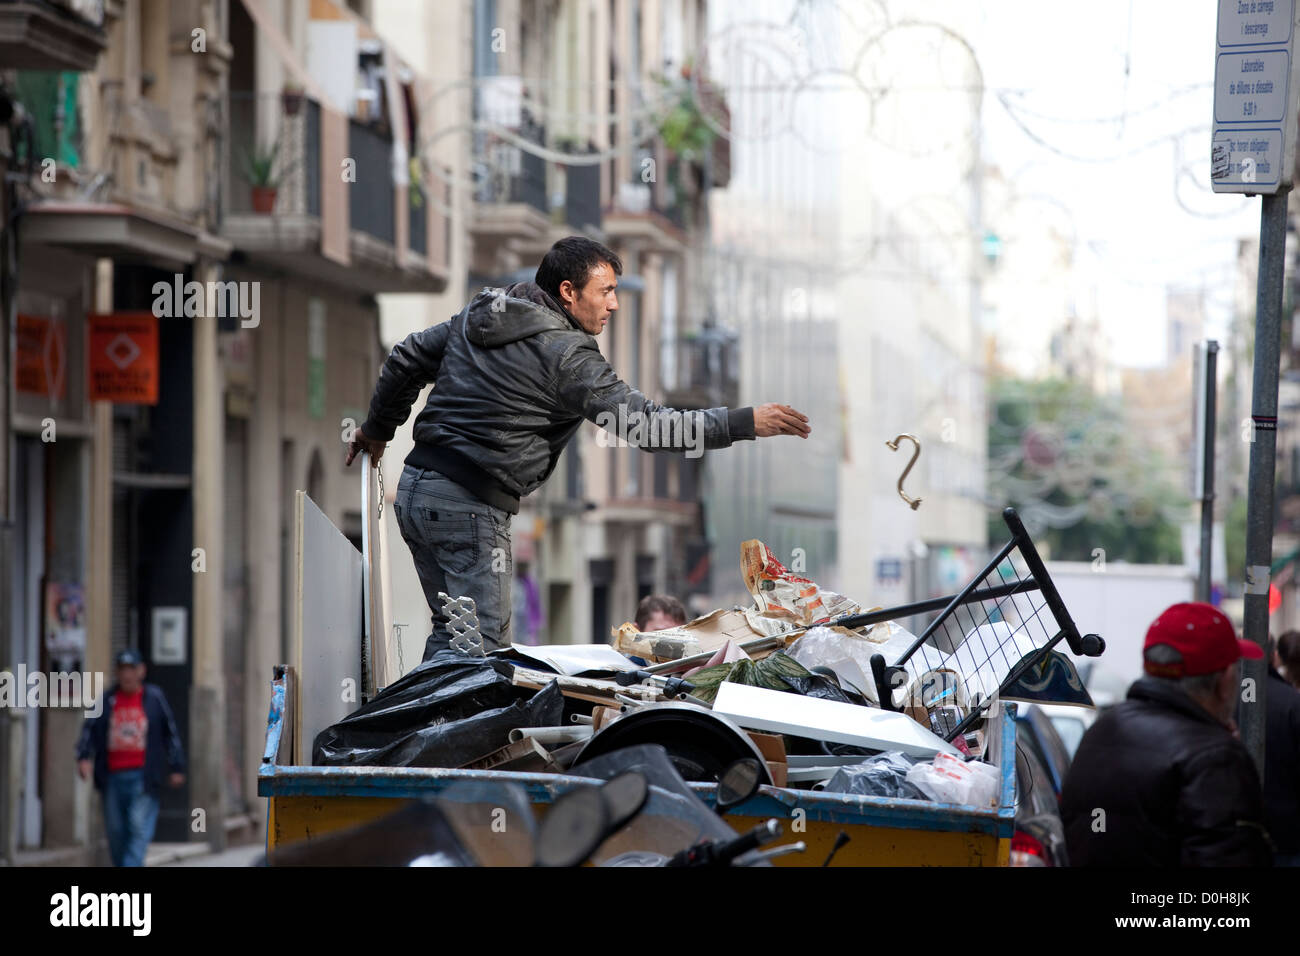 Romani people looting from skips in the streets of Barcelona, Catalonia, Spain, - Stock Image